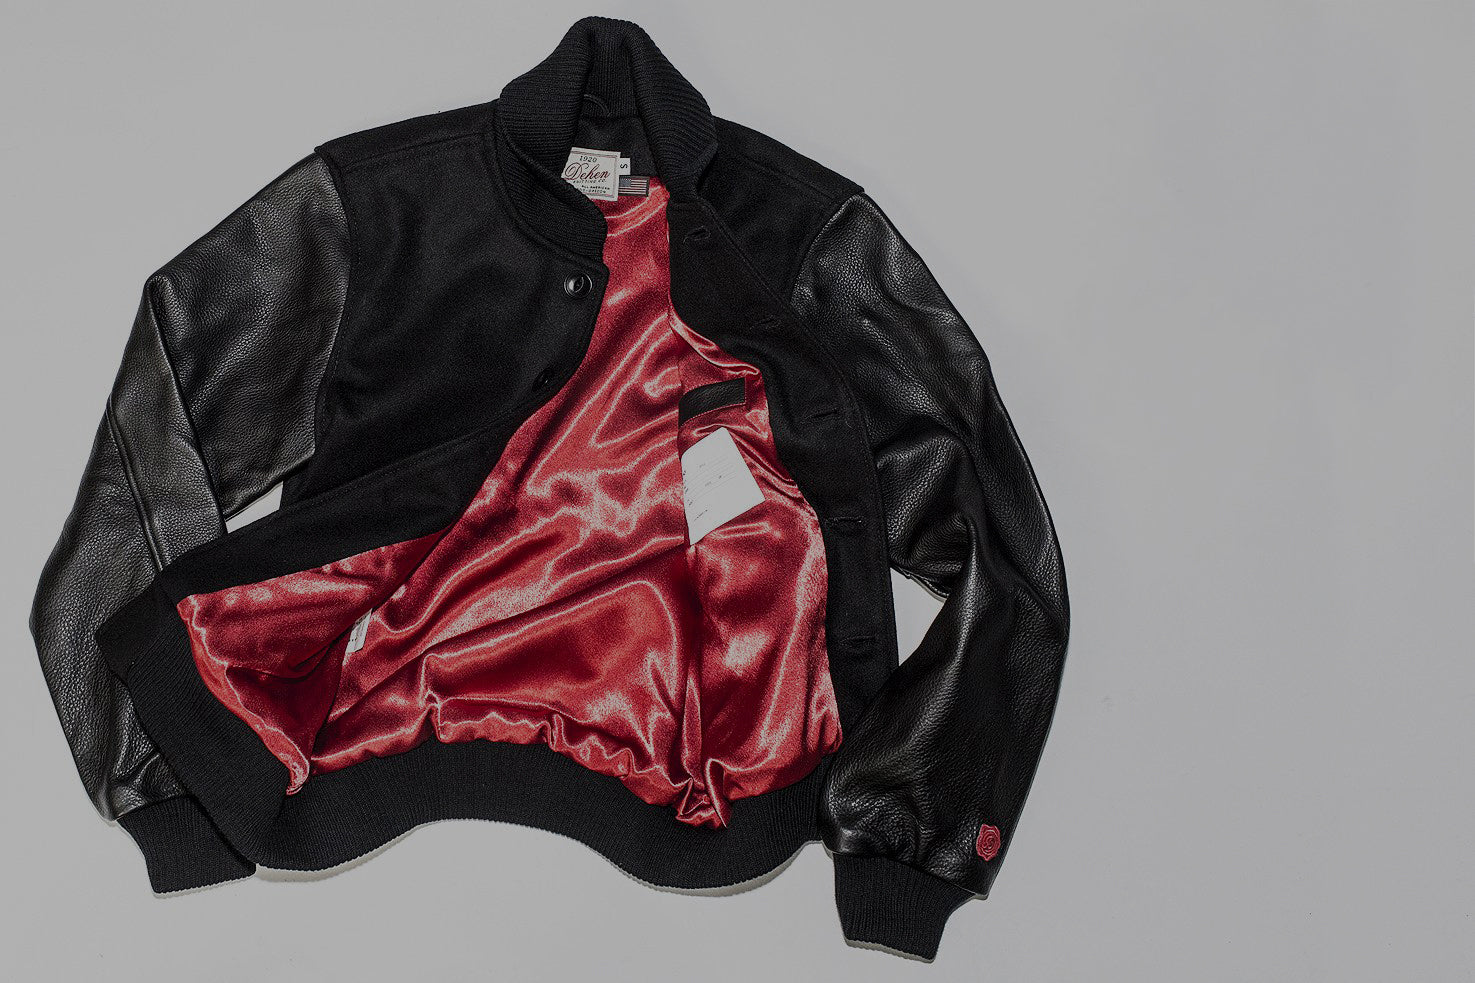 Blends x Dehen 1920 Club Jacket